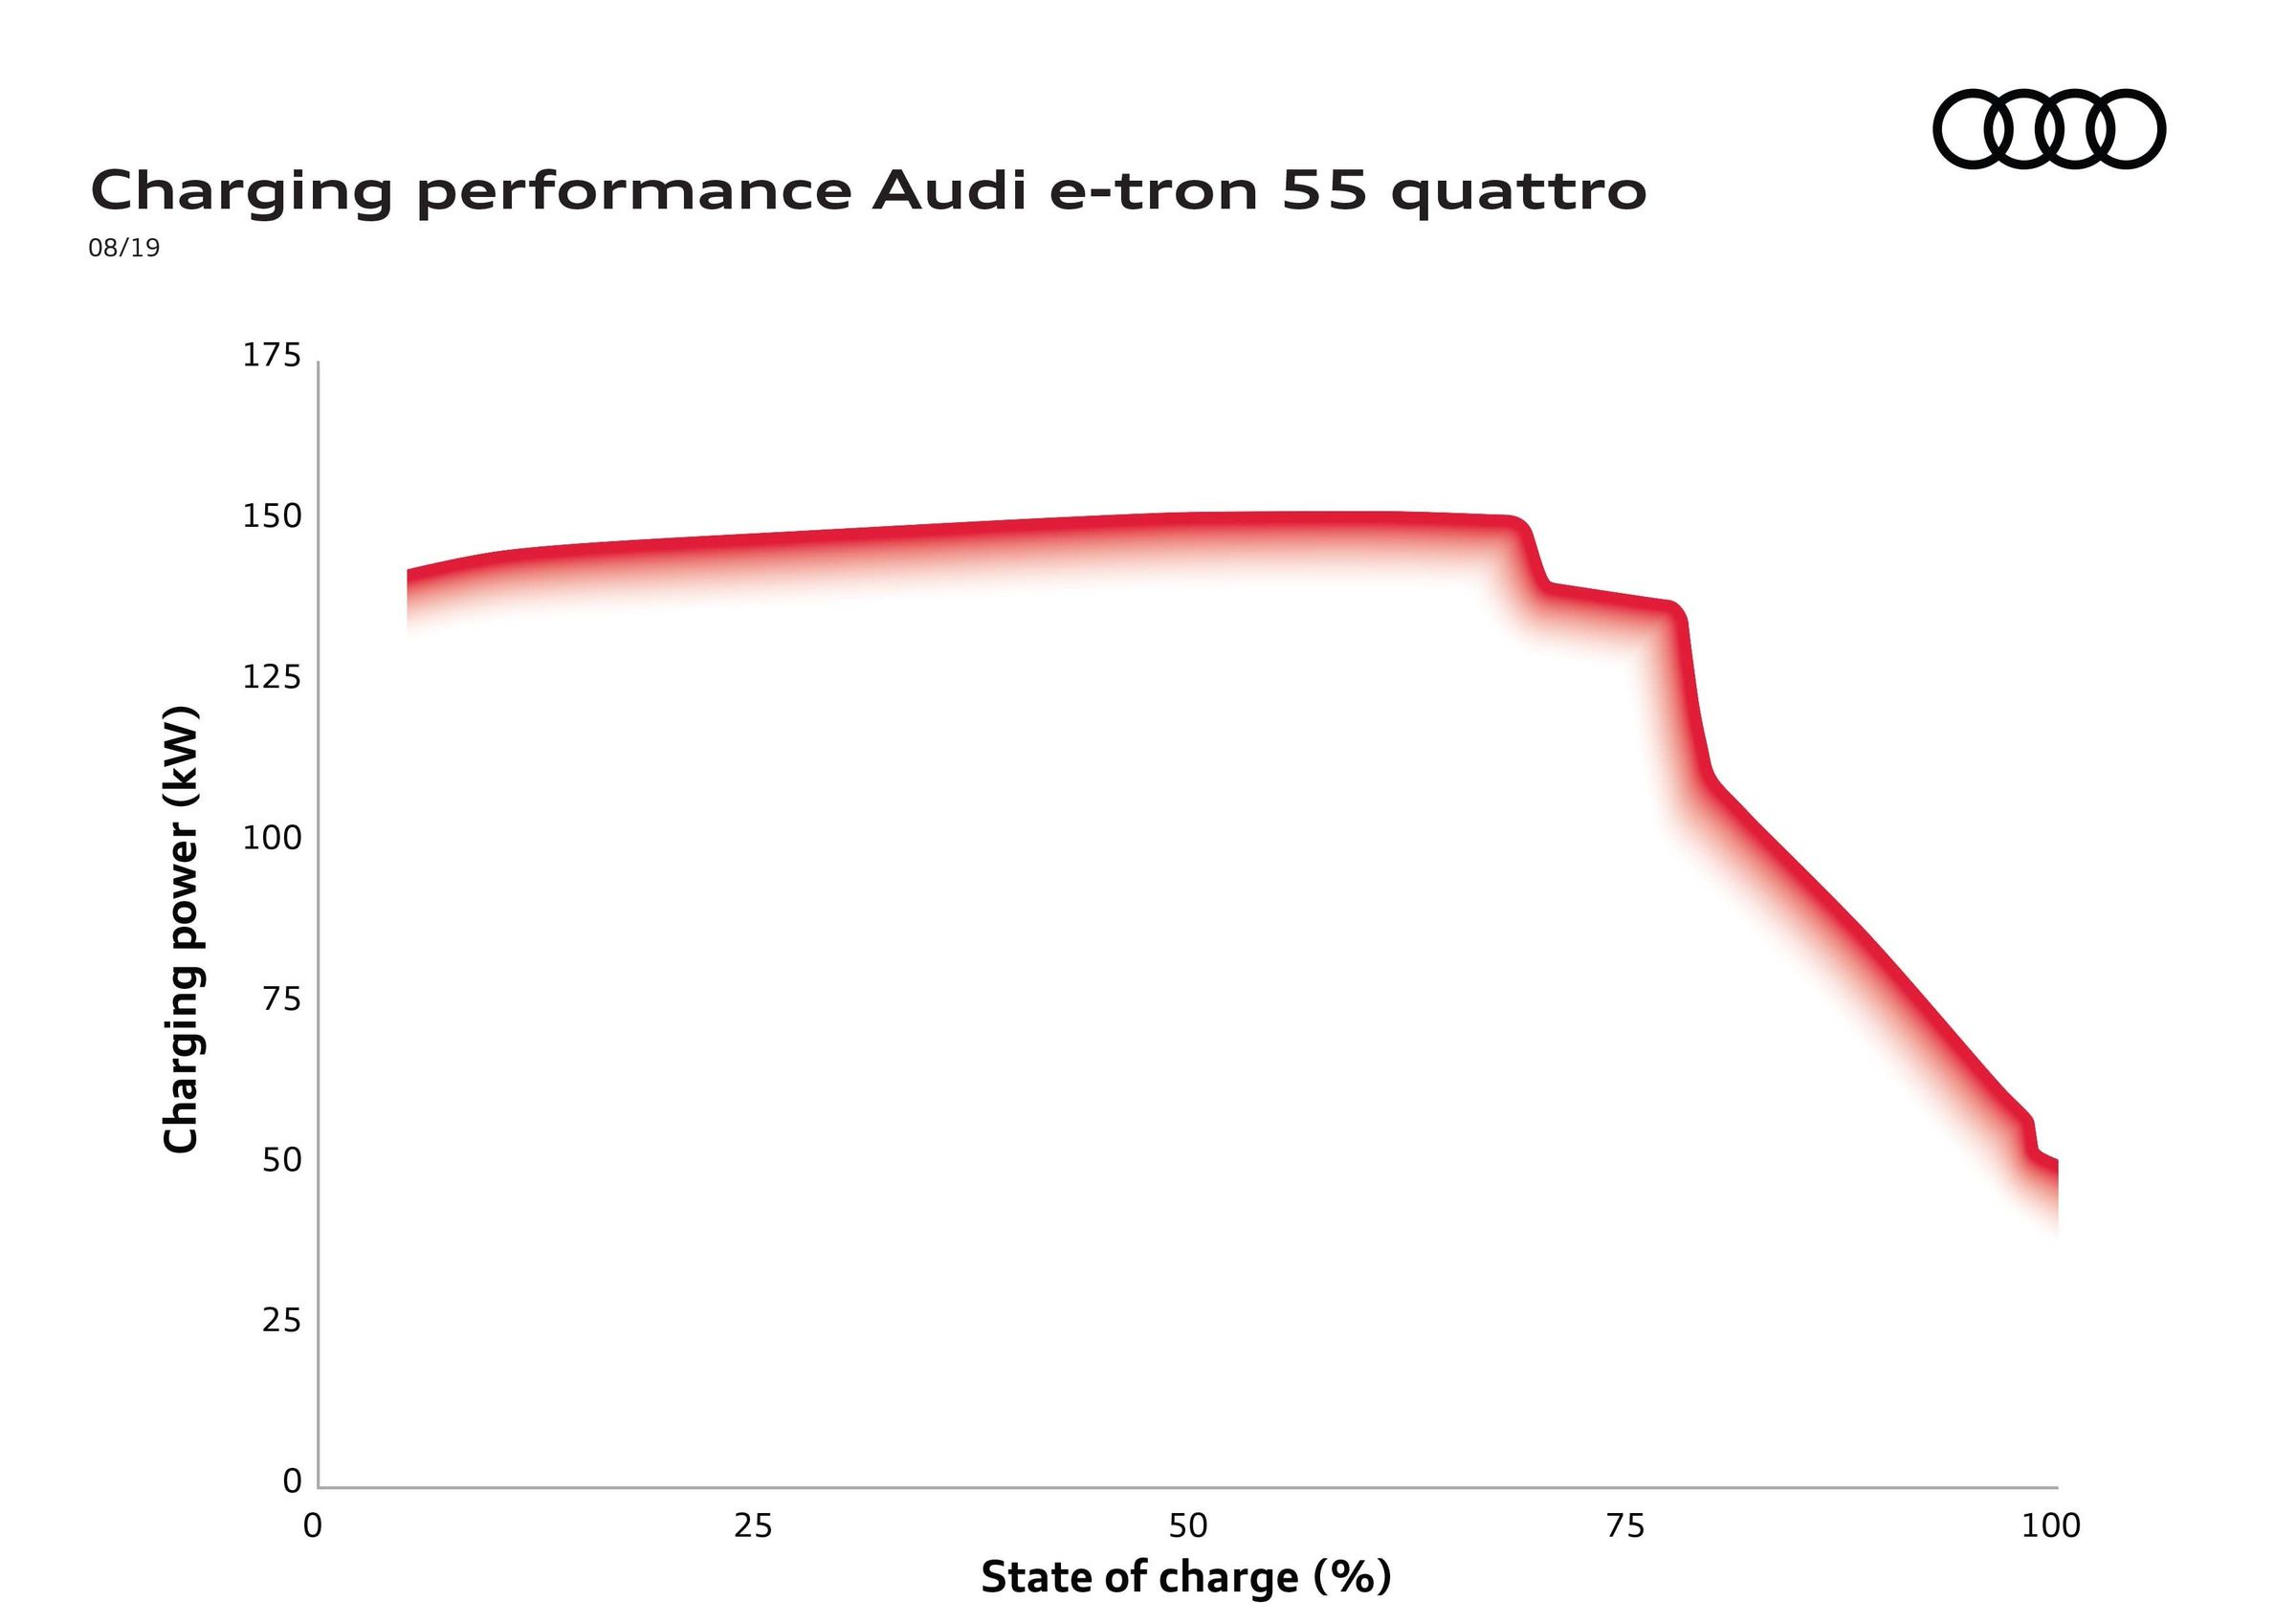 Charging capacity vs. charging speed: What constitutes high charging performance - Image 4